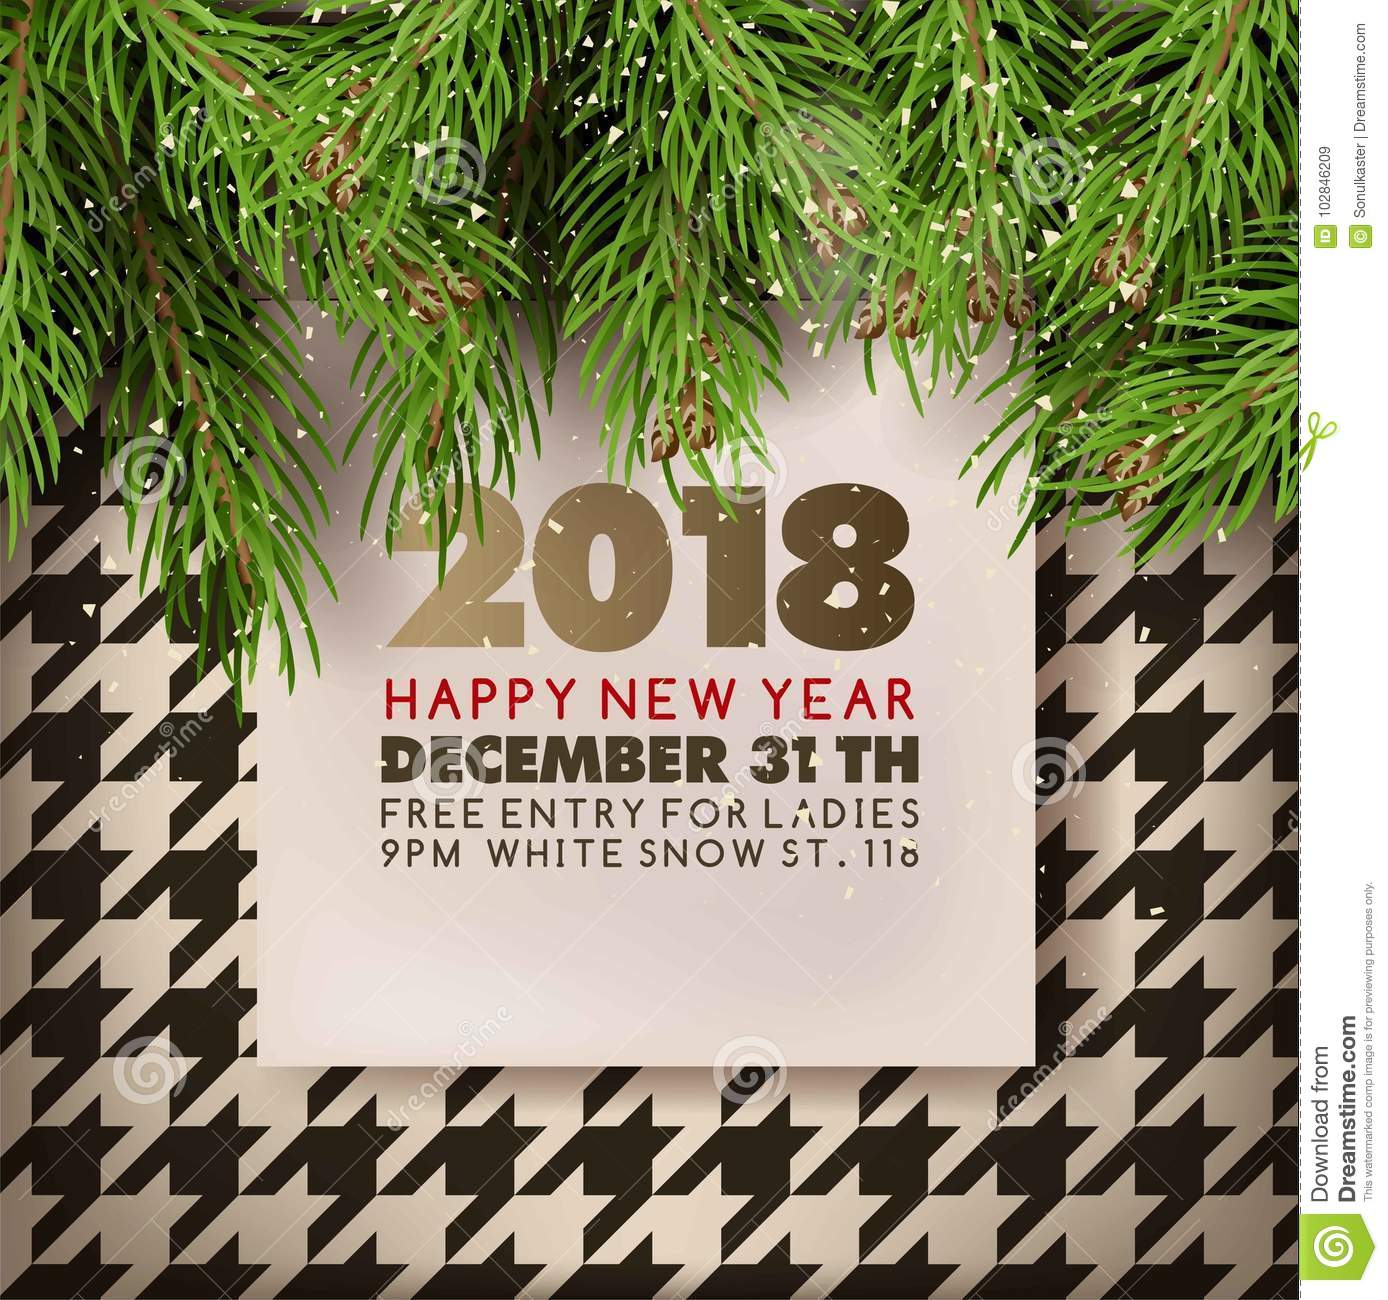 Christmas Tree Vector Free.Happy New Year Party Invitation Poster Of Christmas Tree